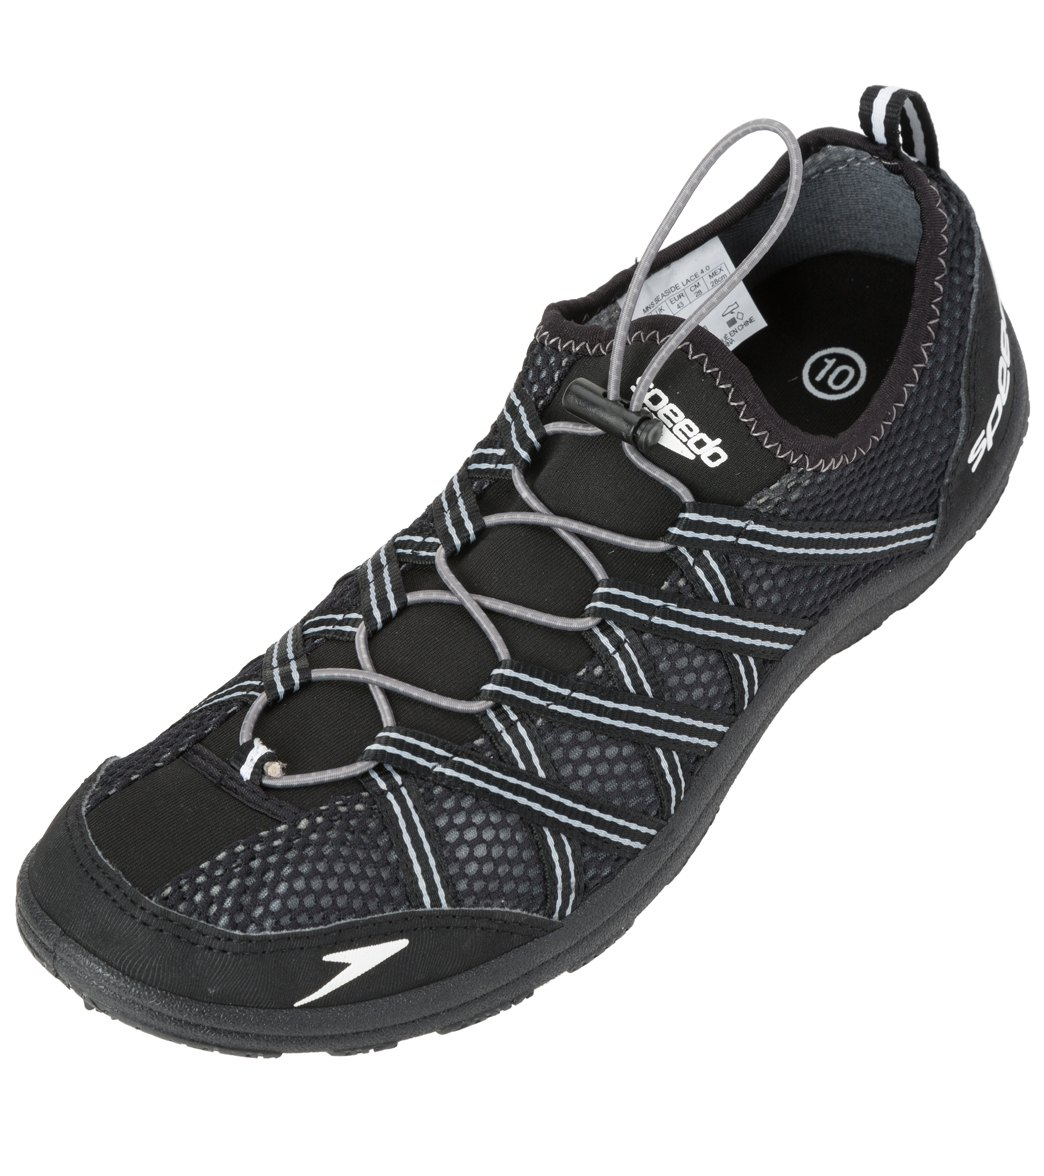 innovative design factory price outlet store Speedo Men's Seaside Lace 4.0 Water Shoes at SwimOutlet.com